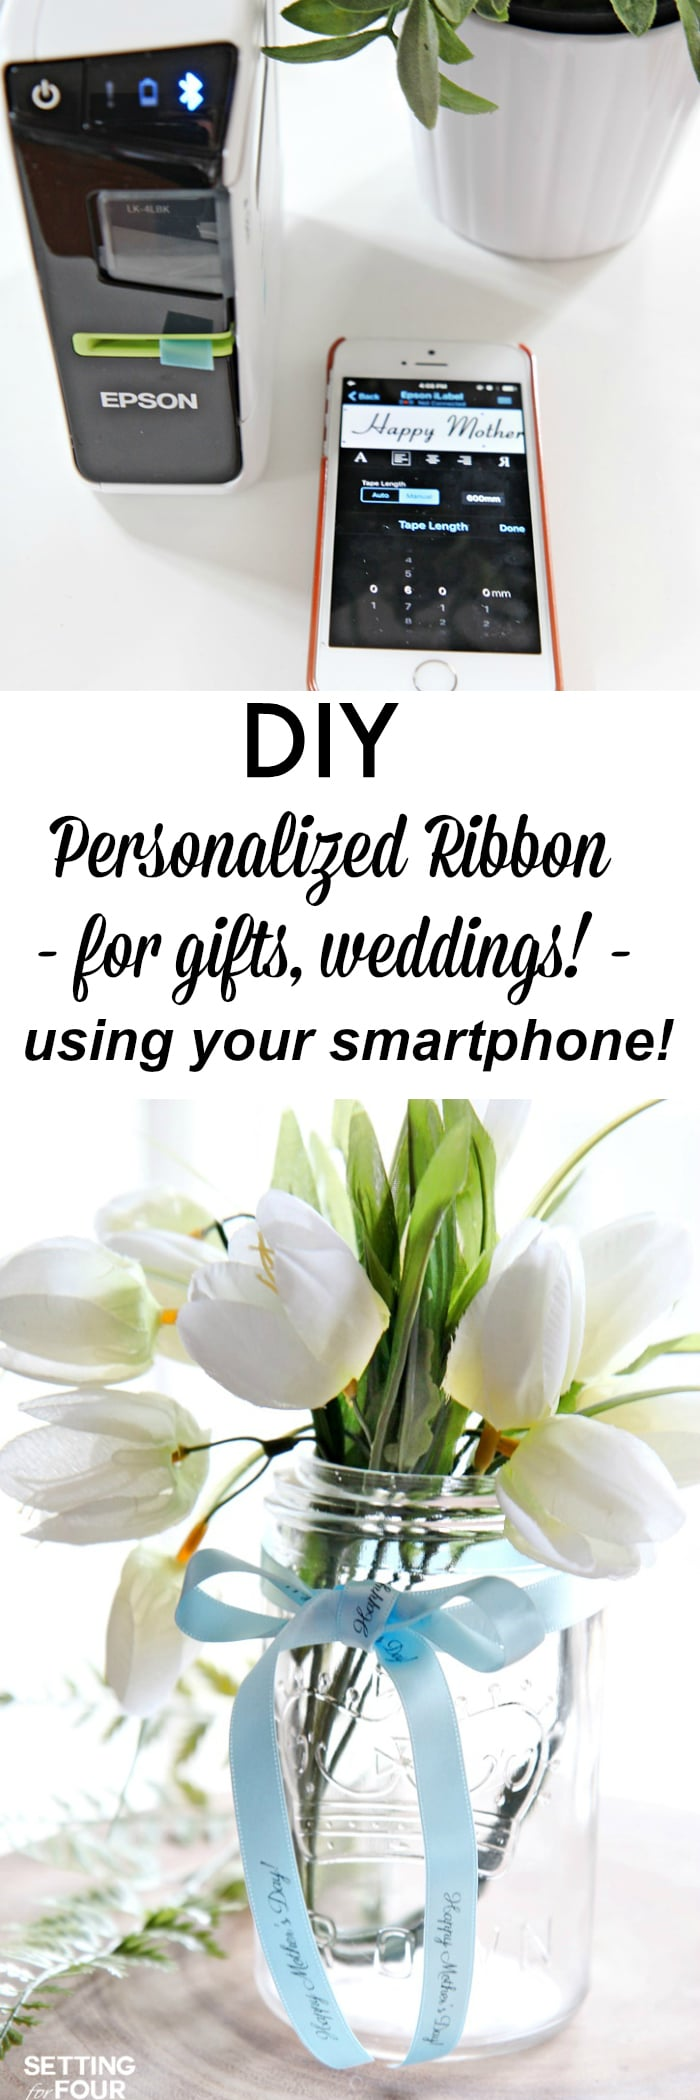 How to Make Personalized Ribbon for Gifts and Weddings and Personalized Labels for Organization.